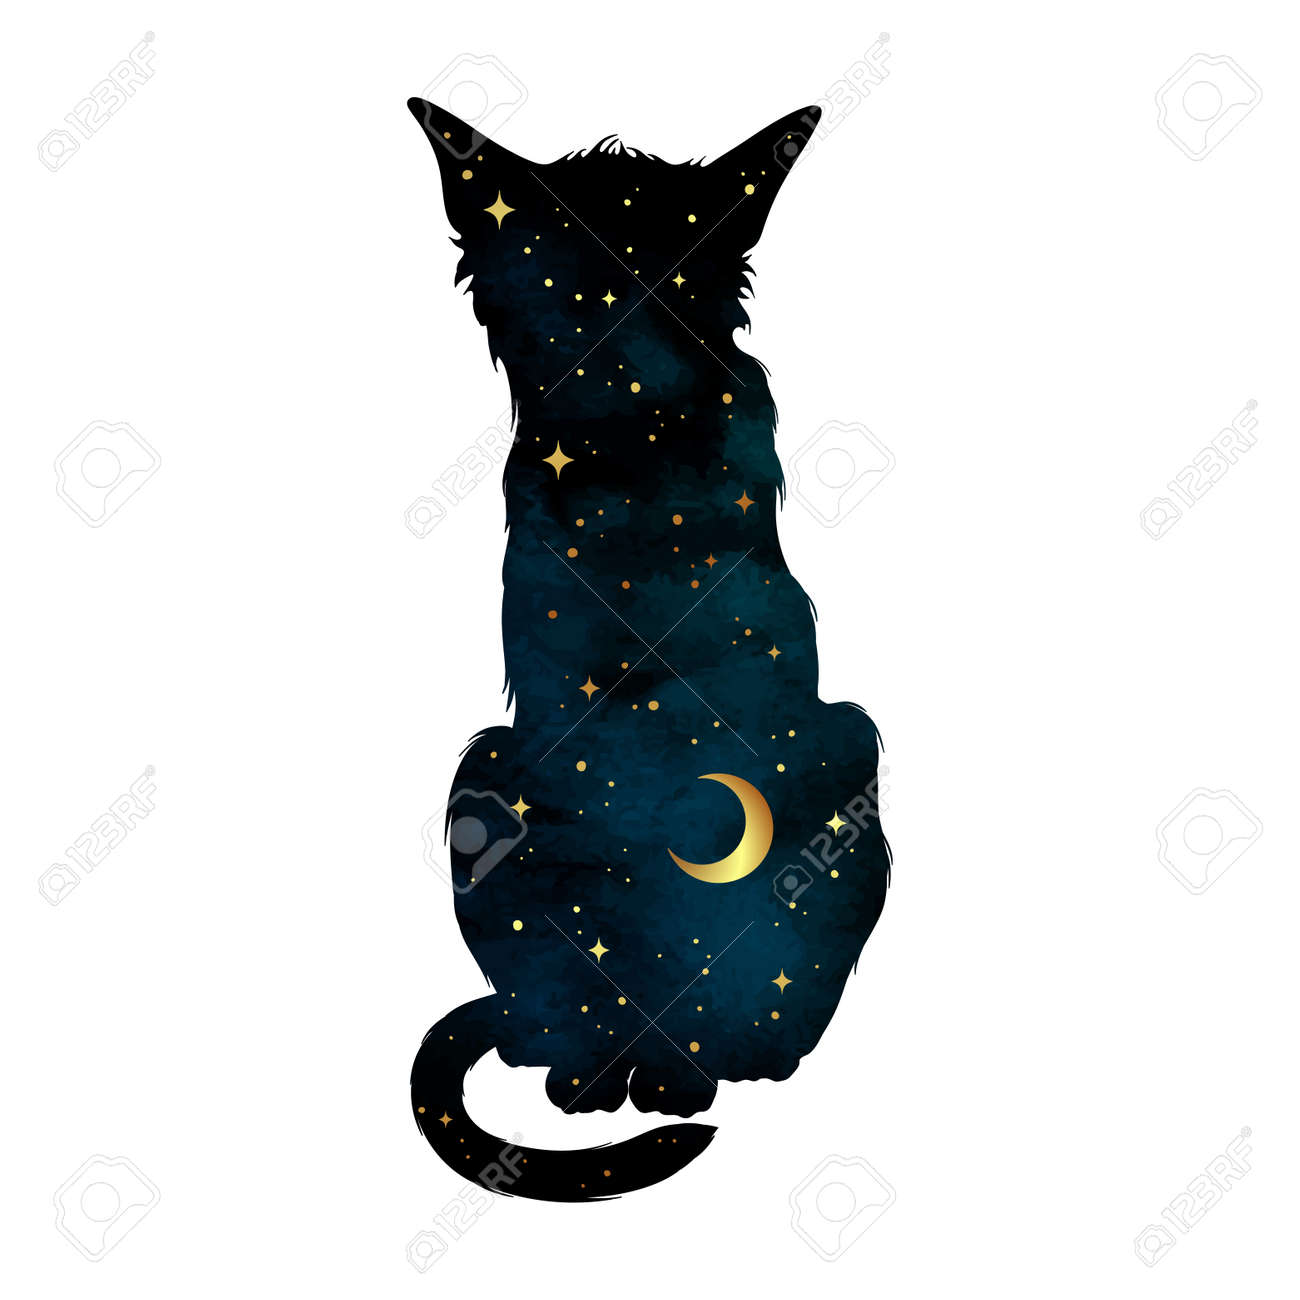 Silhouette of cat with crescent moon and stars isolated. Sticker, print or tattoo design vector illustration. Pagan totem, wiccan familiar spirit art. - 158913022